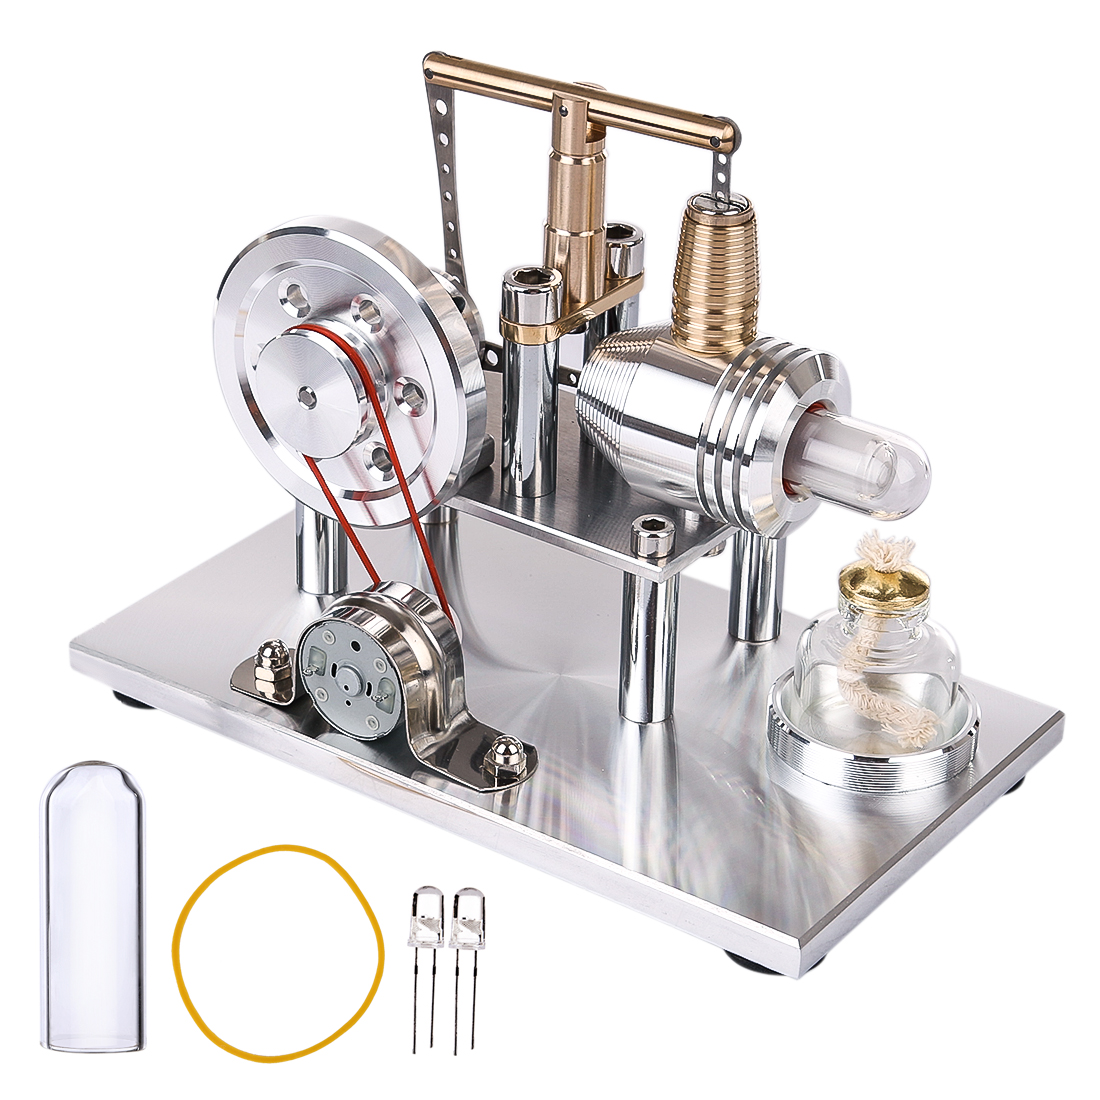 2019 New Balance Stirling Copper Cylinder Generator with Alcohol Lamp Education Kit DIY Steam STEM Toy Model Building Kits2019 New Balance Stirling Copper Cylinder Generator with Alcohol Lamp Education Kit DIY Steam STEM Toy Model Building Kits